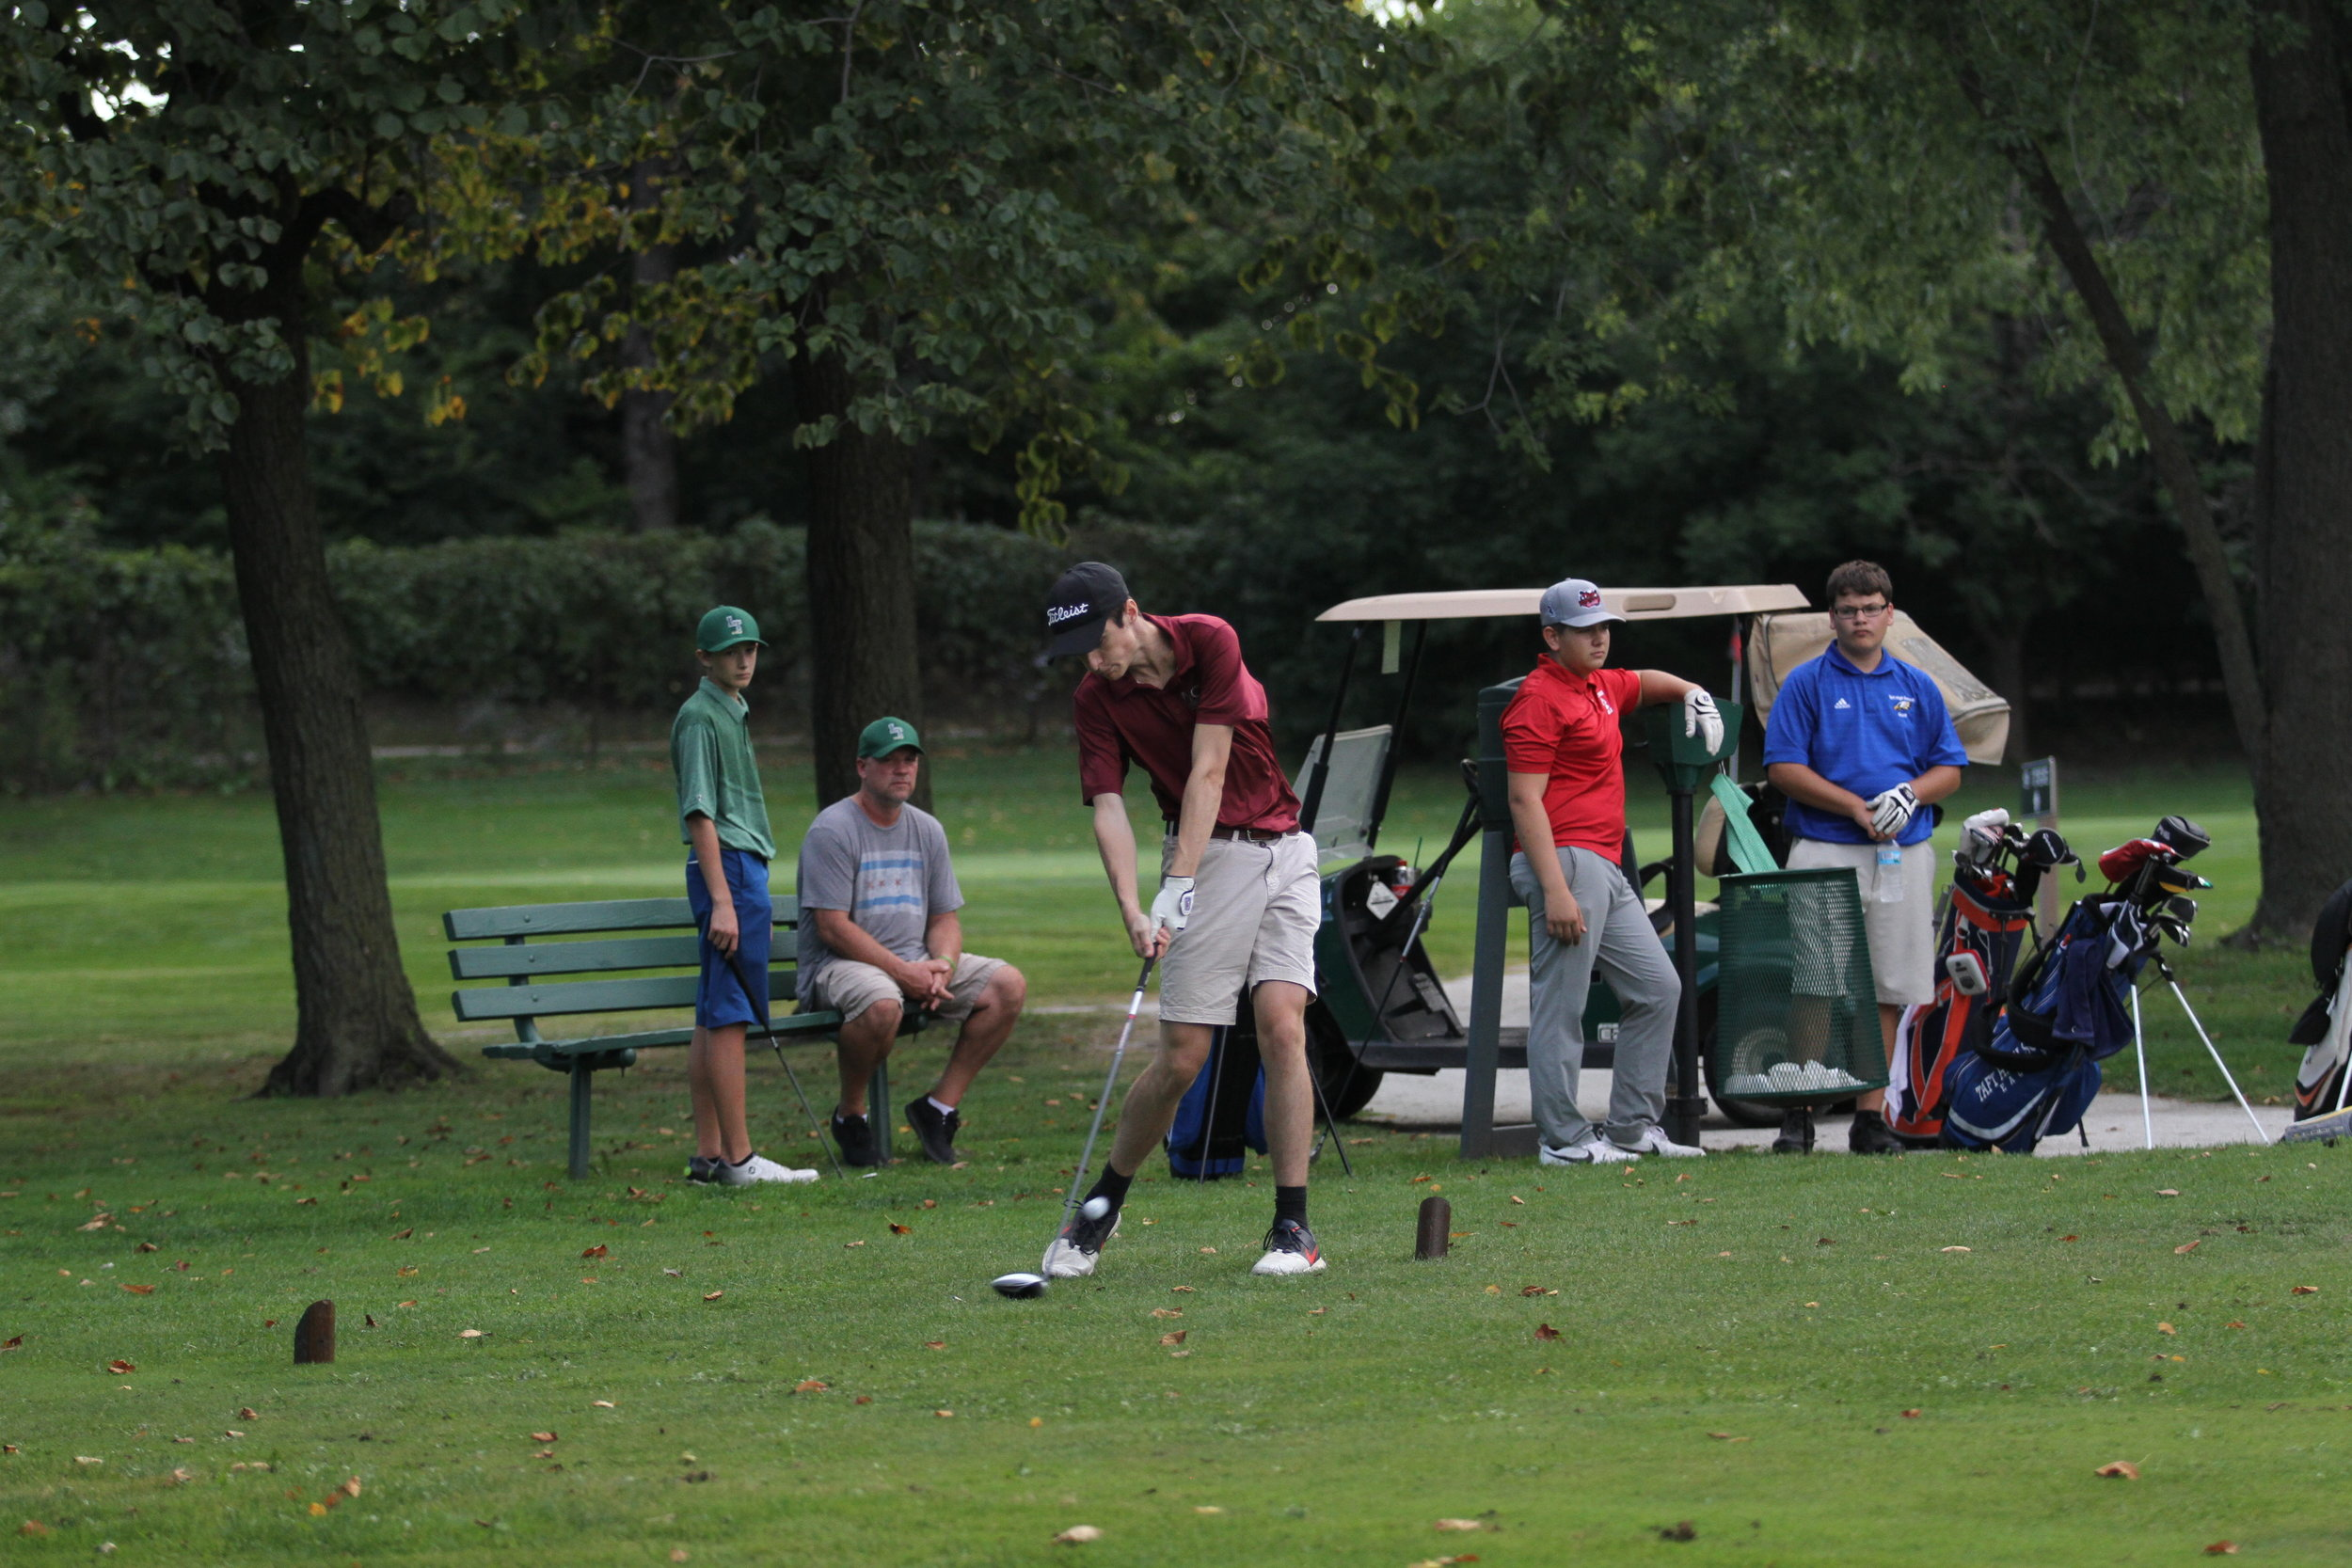 Danny flexes his neck muscles while playing some very intimidating opponents in a golf match.